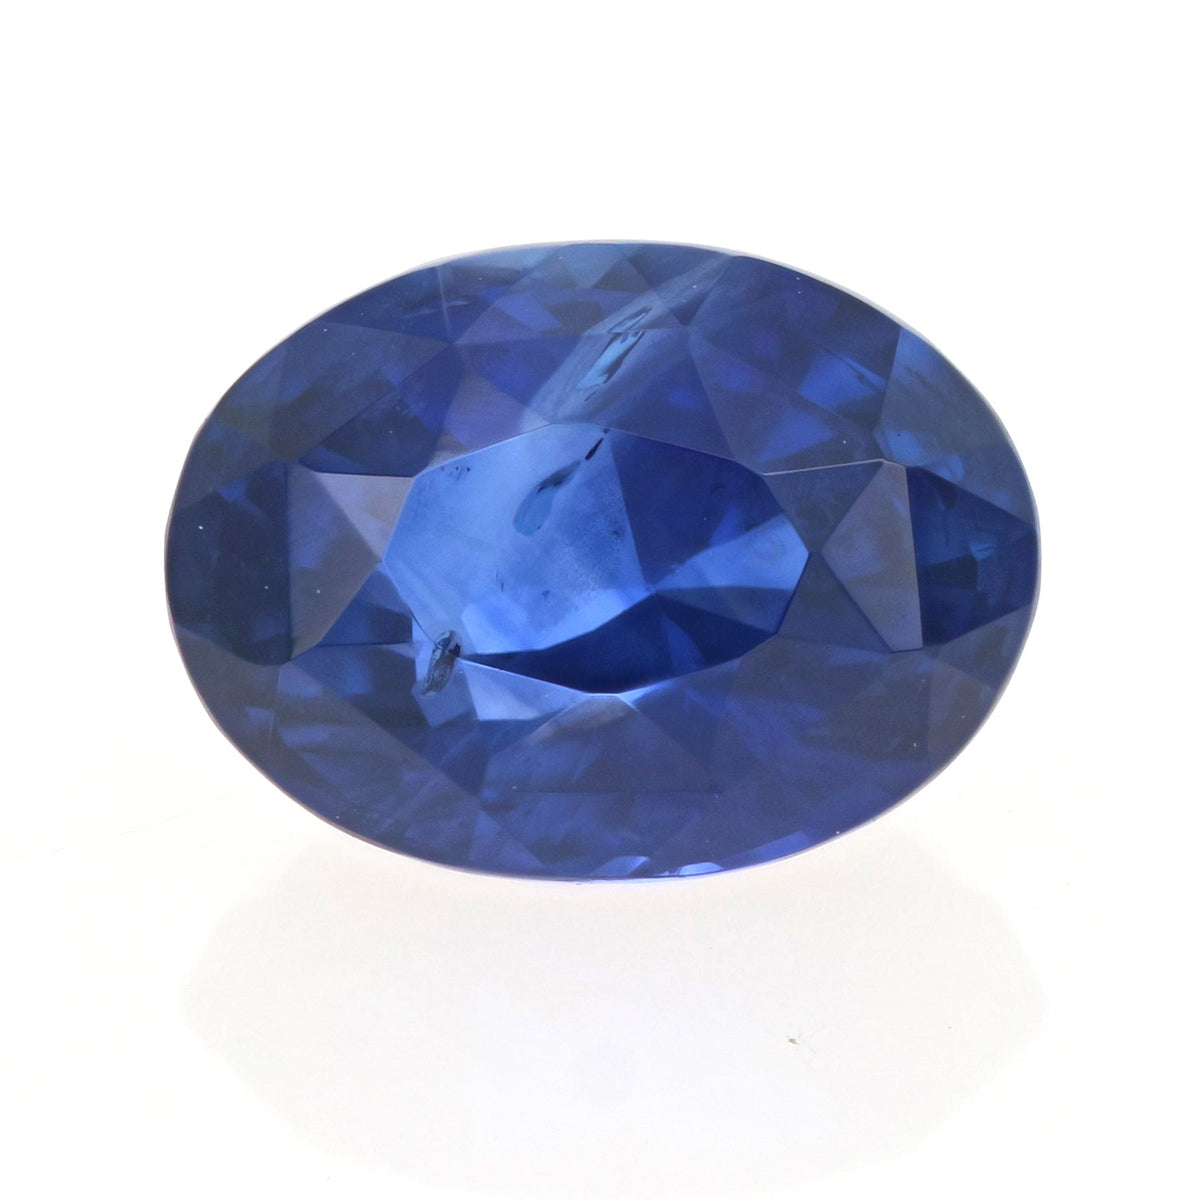 2.01ct Loose Blue Sapphire Oval